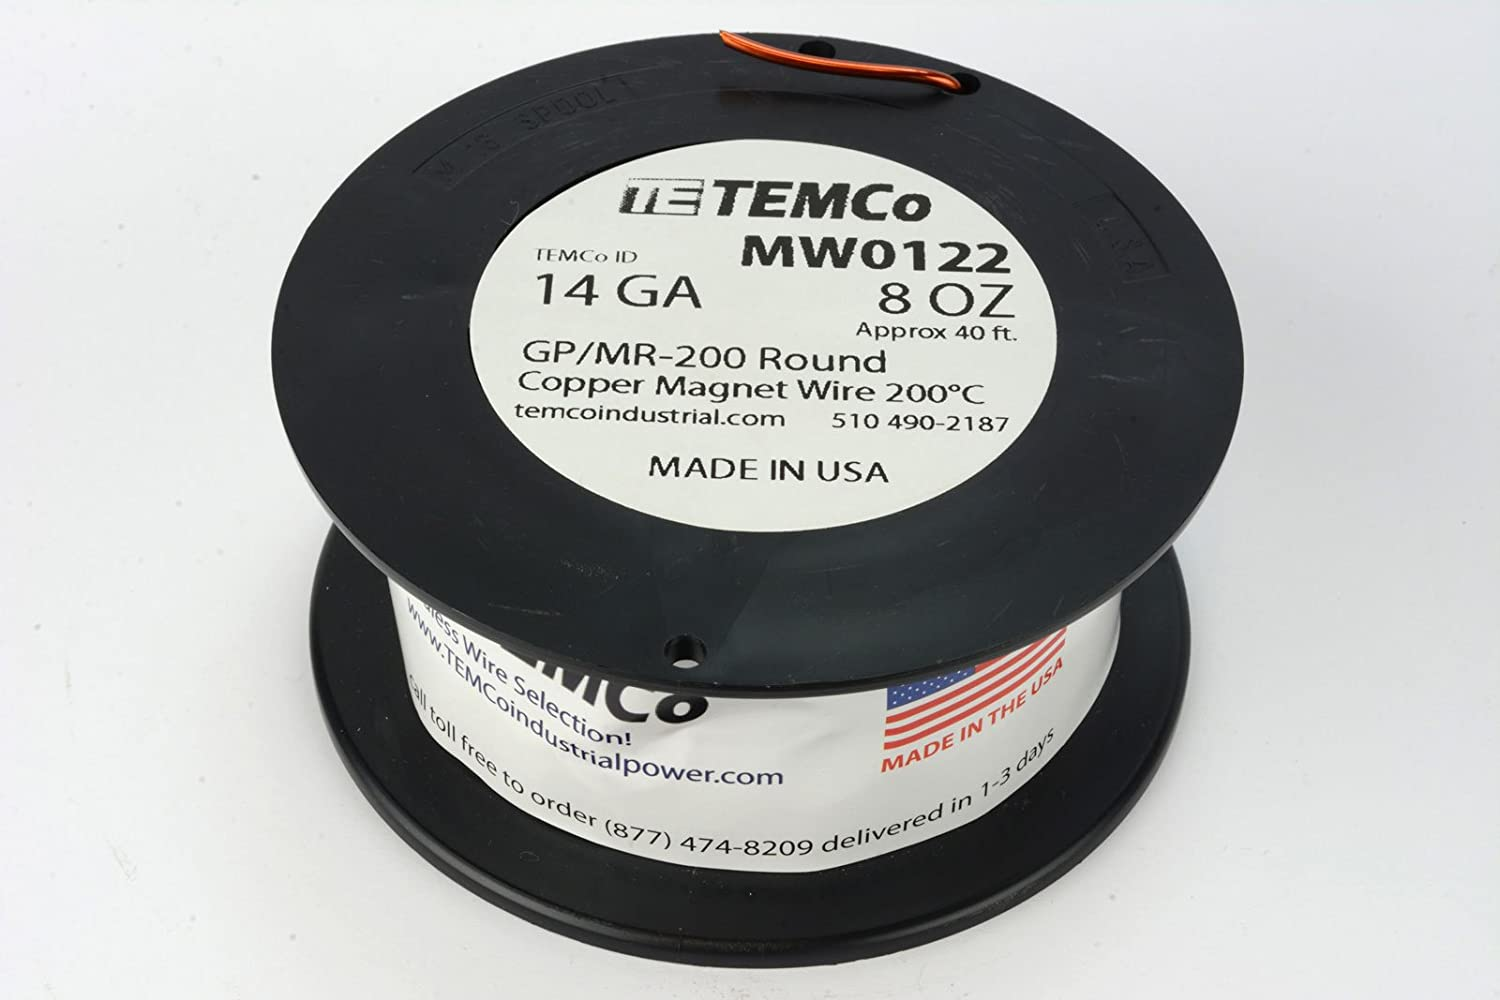 Amazon.com: TEMCo 14 AWG Copper Magnet Wire - 8 oz 40 ft 200°C ...